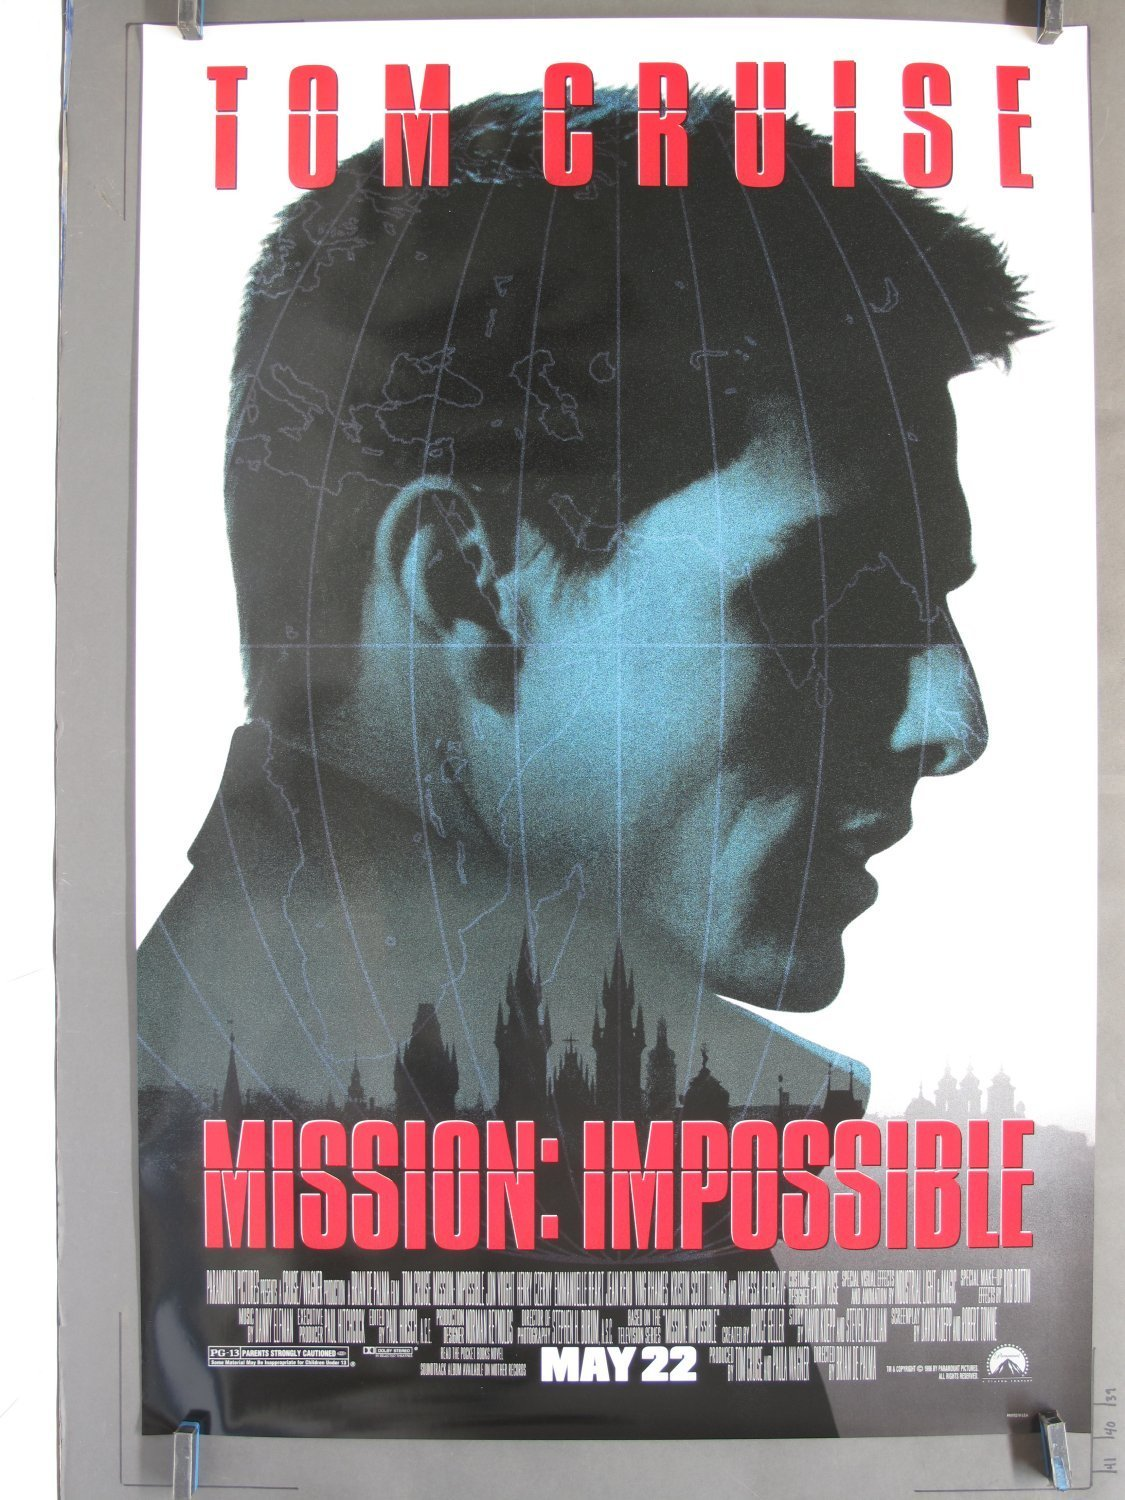 Mission Impossible 1996 Ds Advance One Sheet Poster For Sale